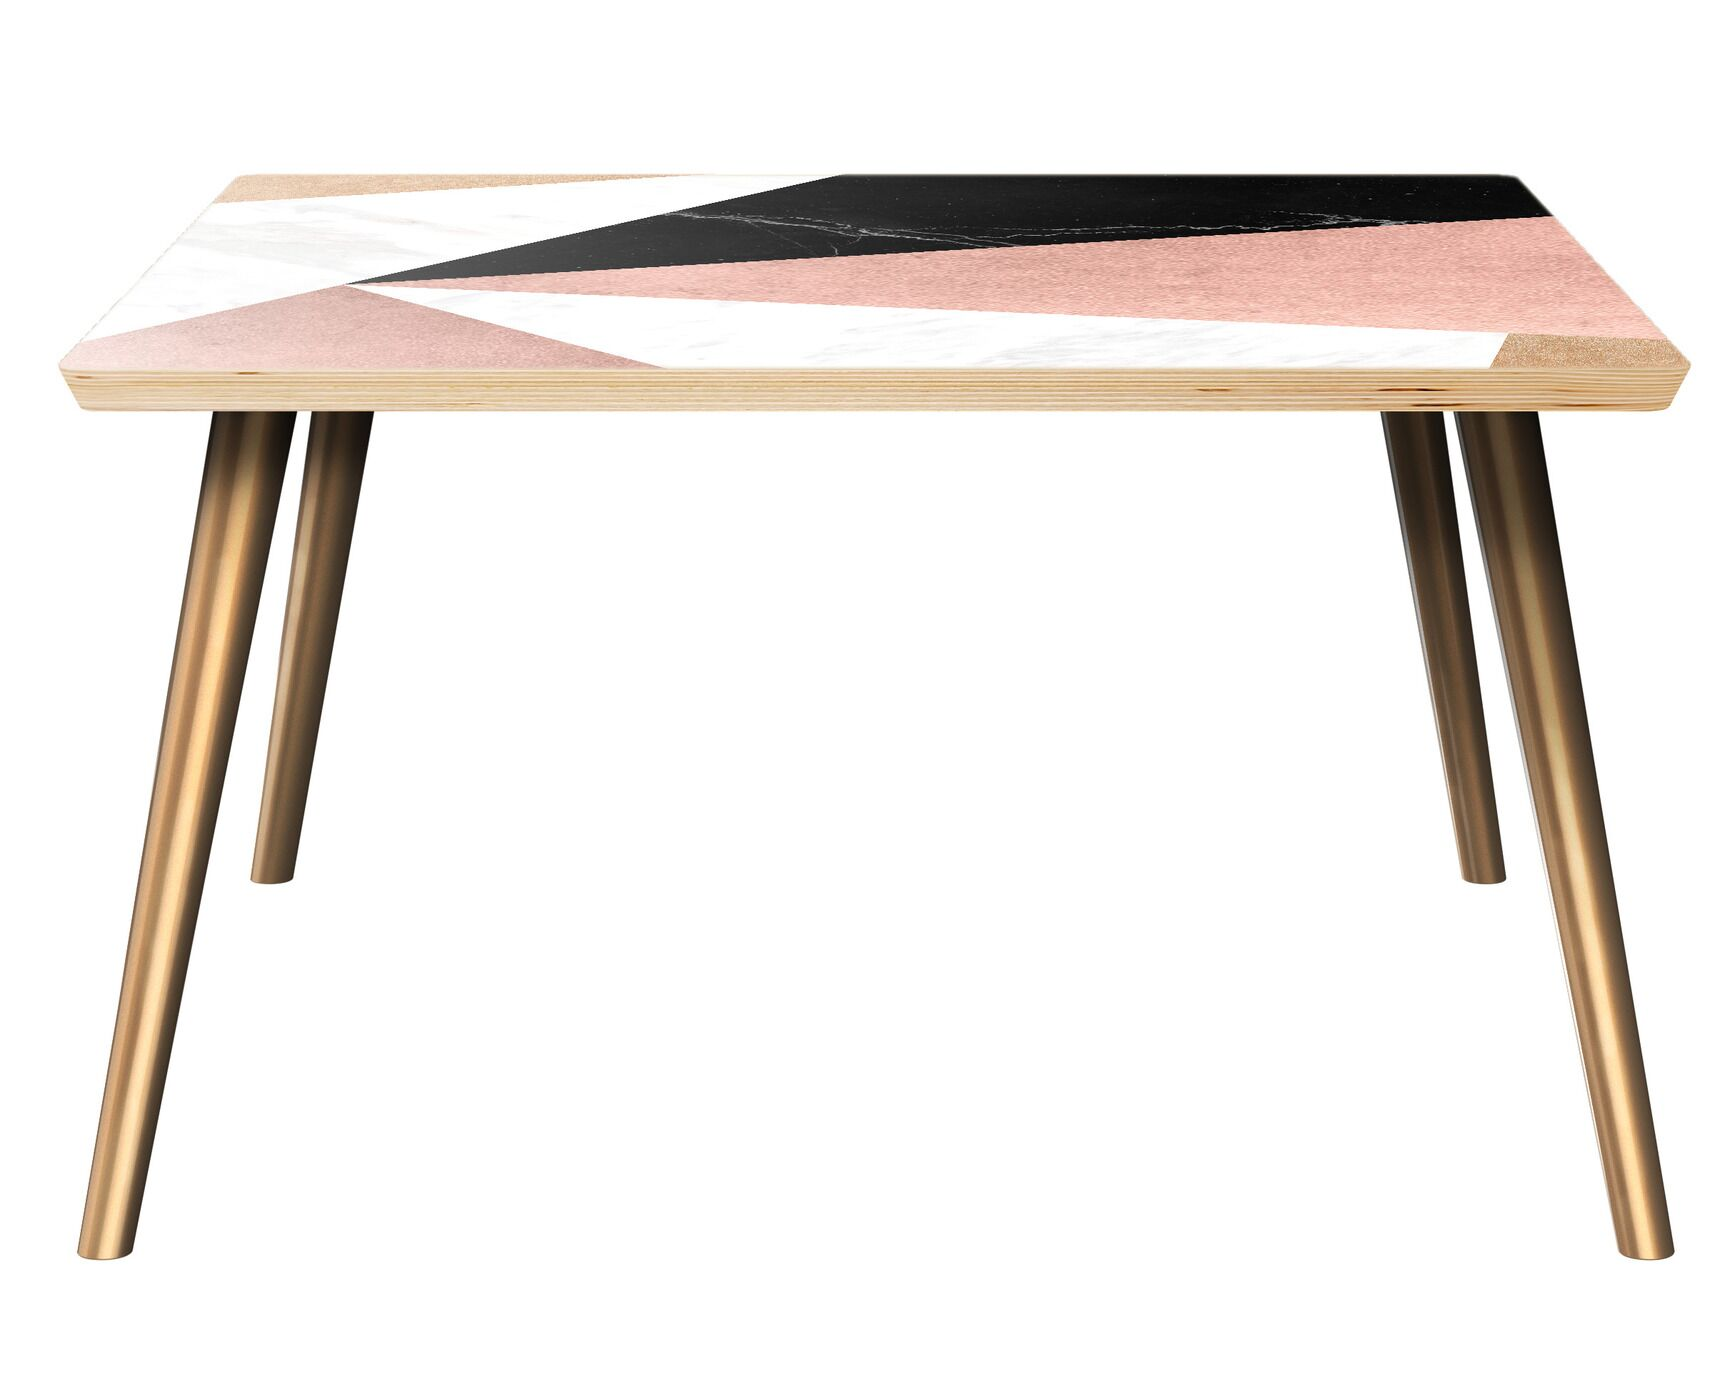 Roybal Coffee Table Table Top Color: Natural, Table Base Color: Brass